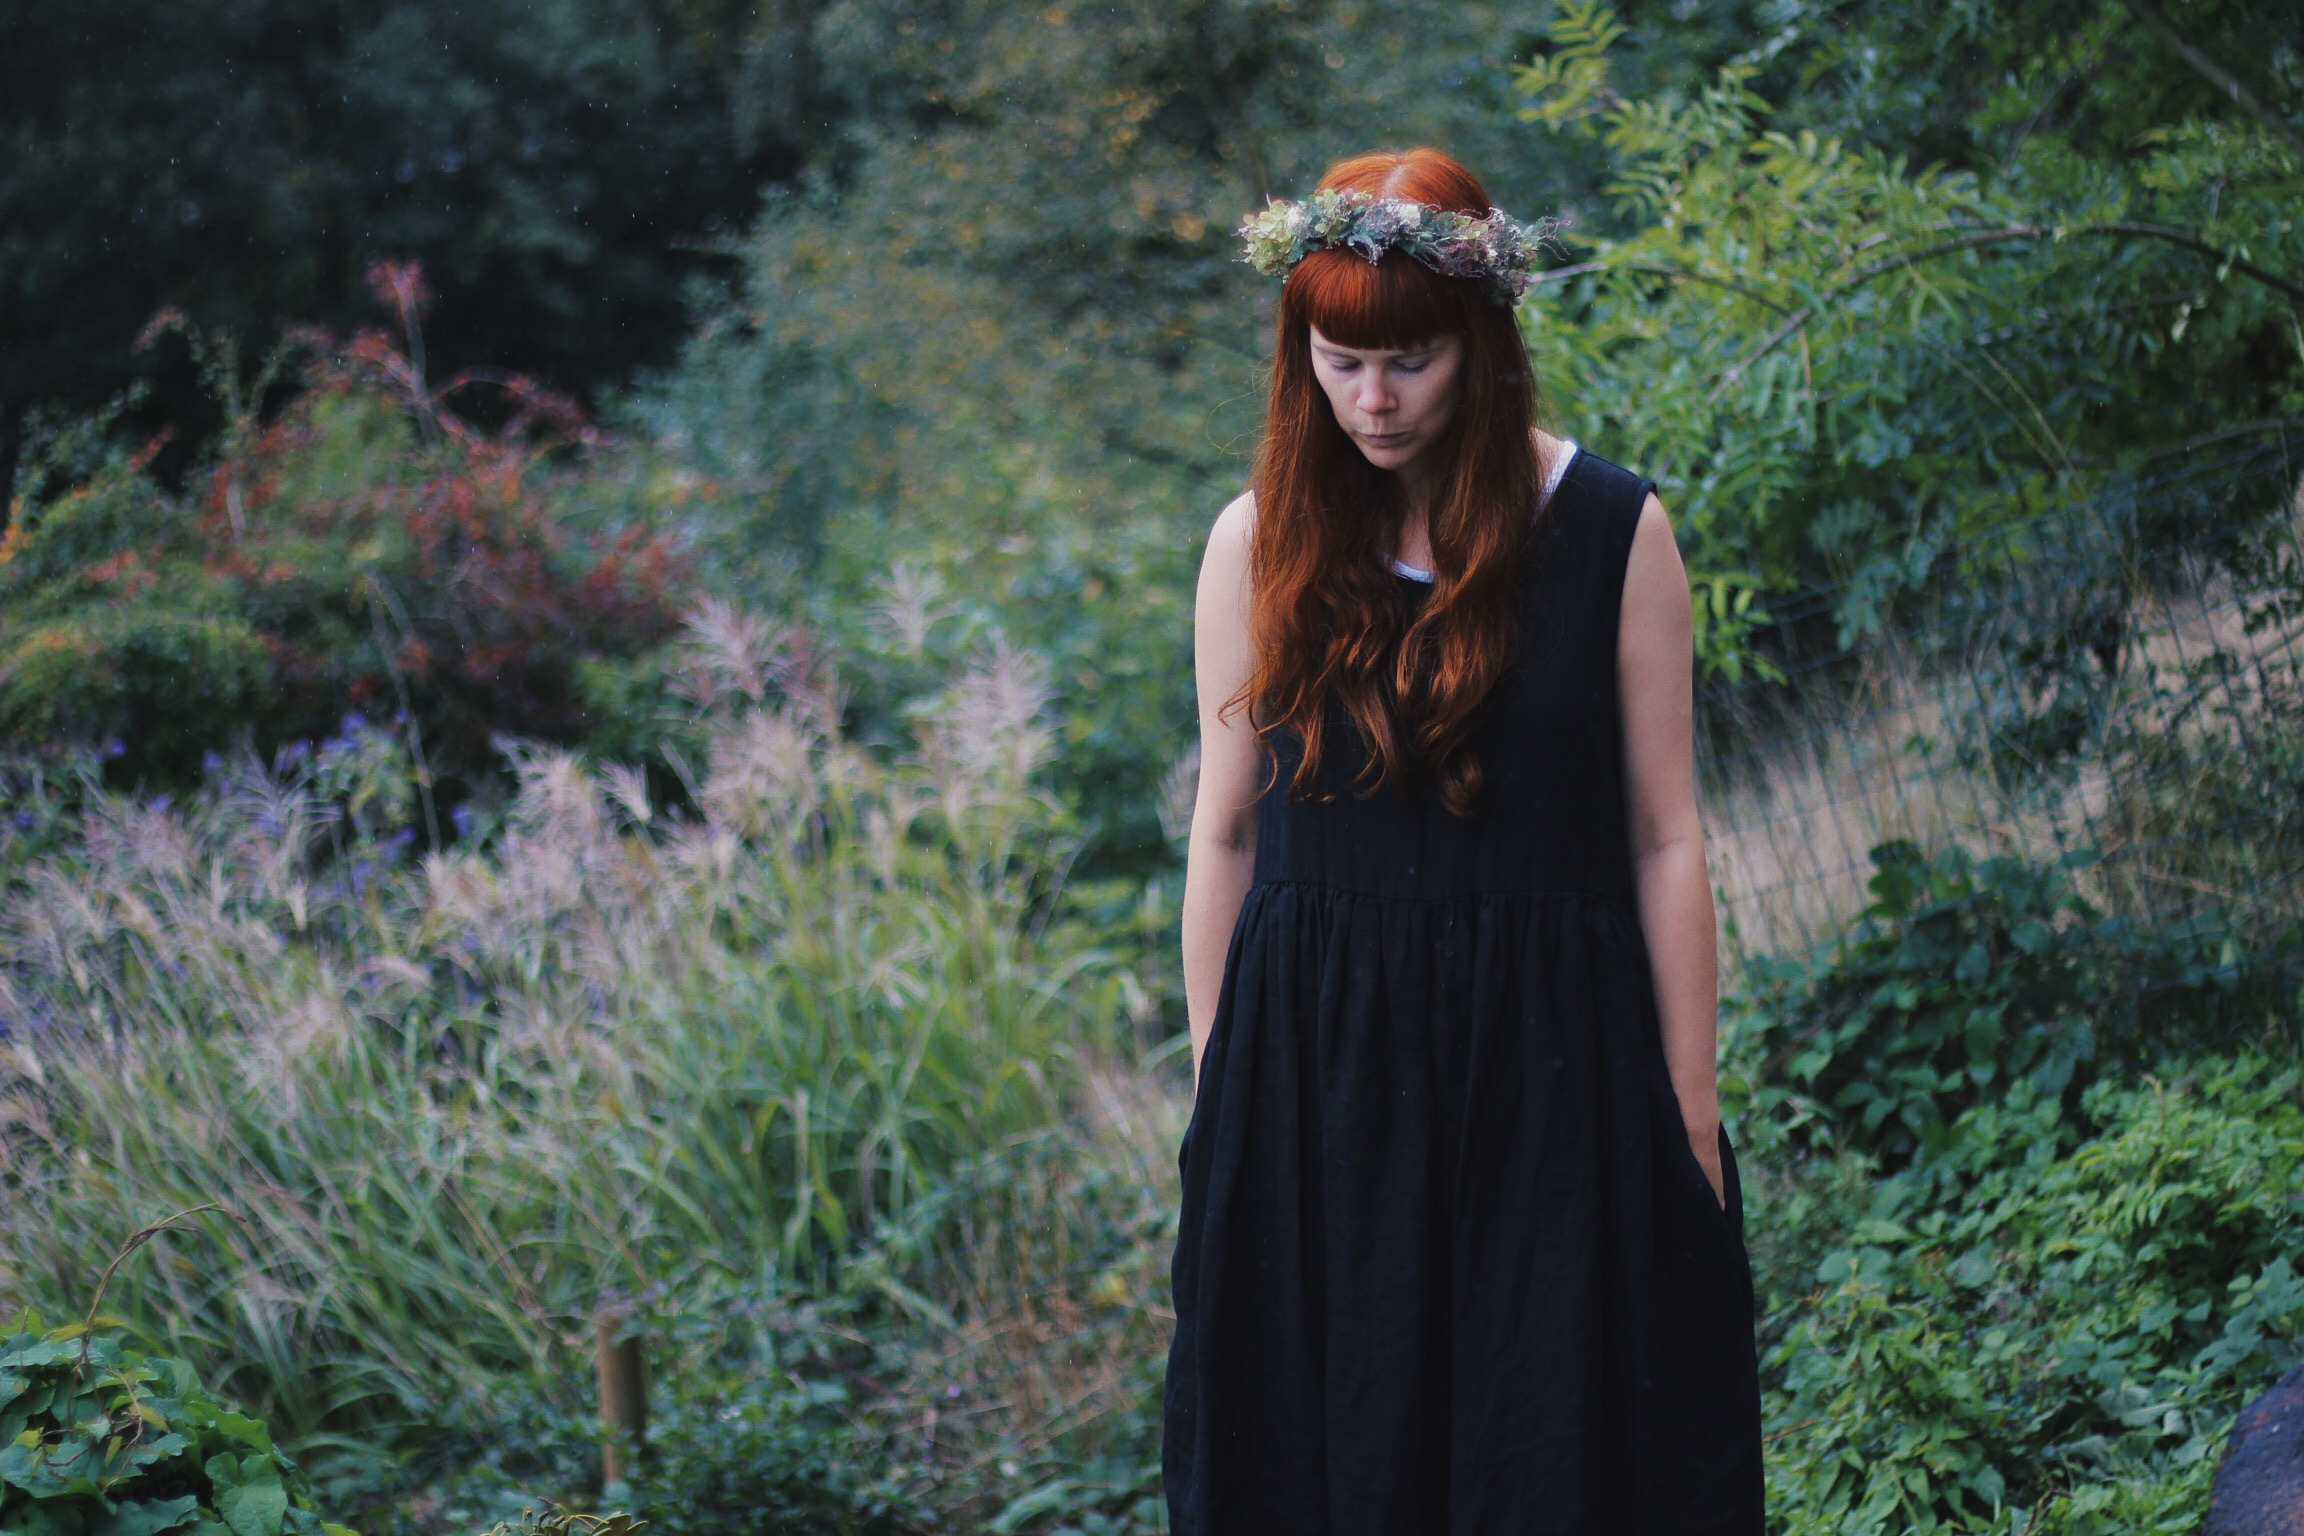 Girl wearing flower crown and black dress